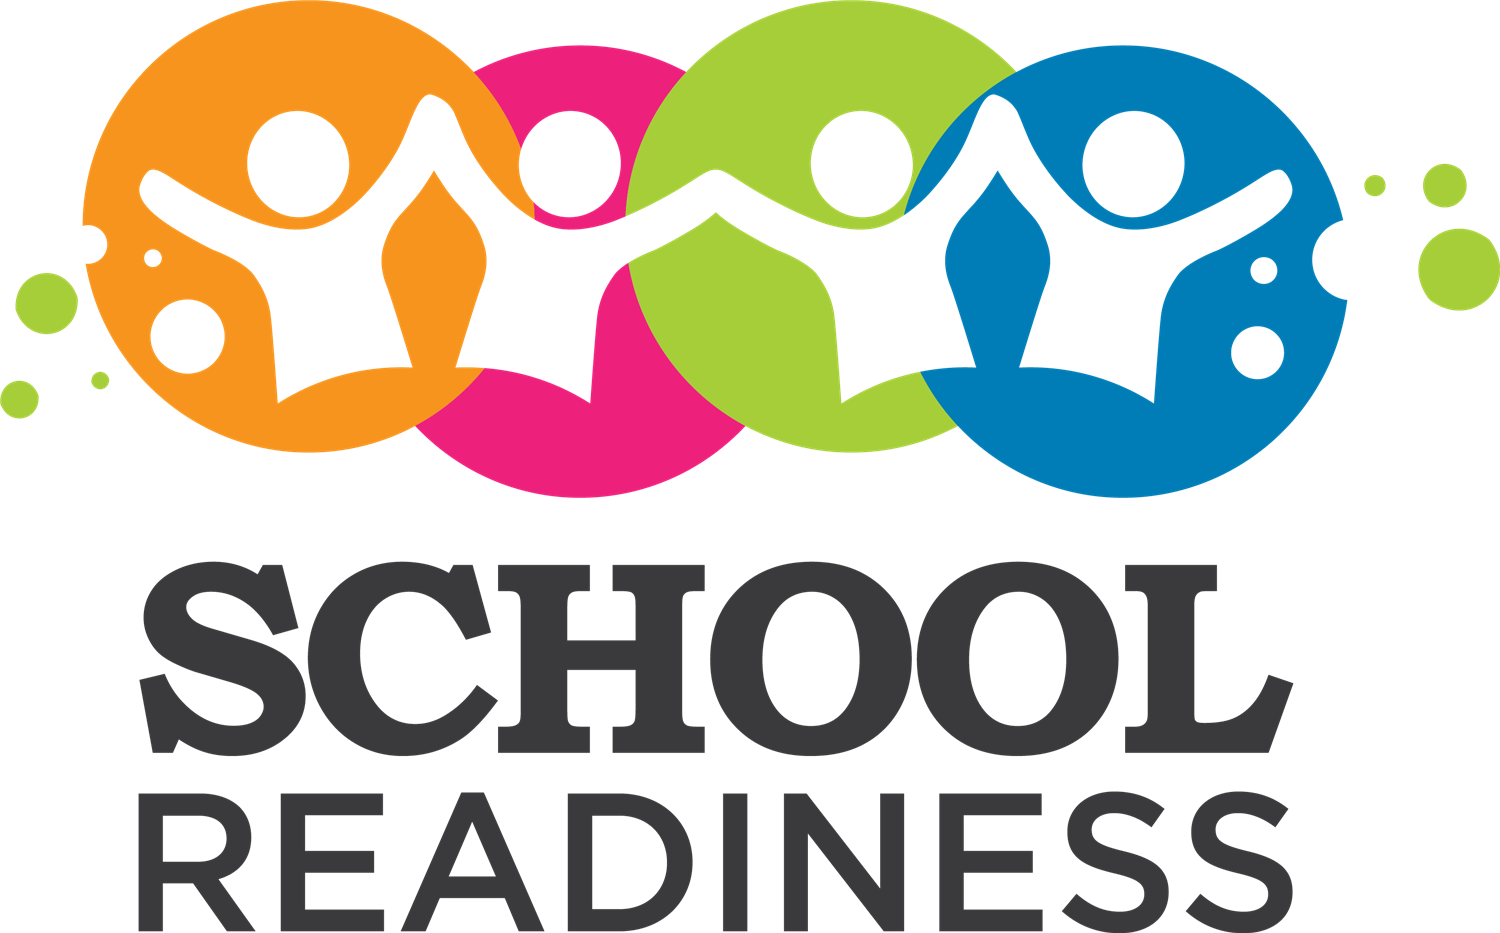 multi colored school readiness logo